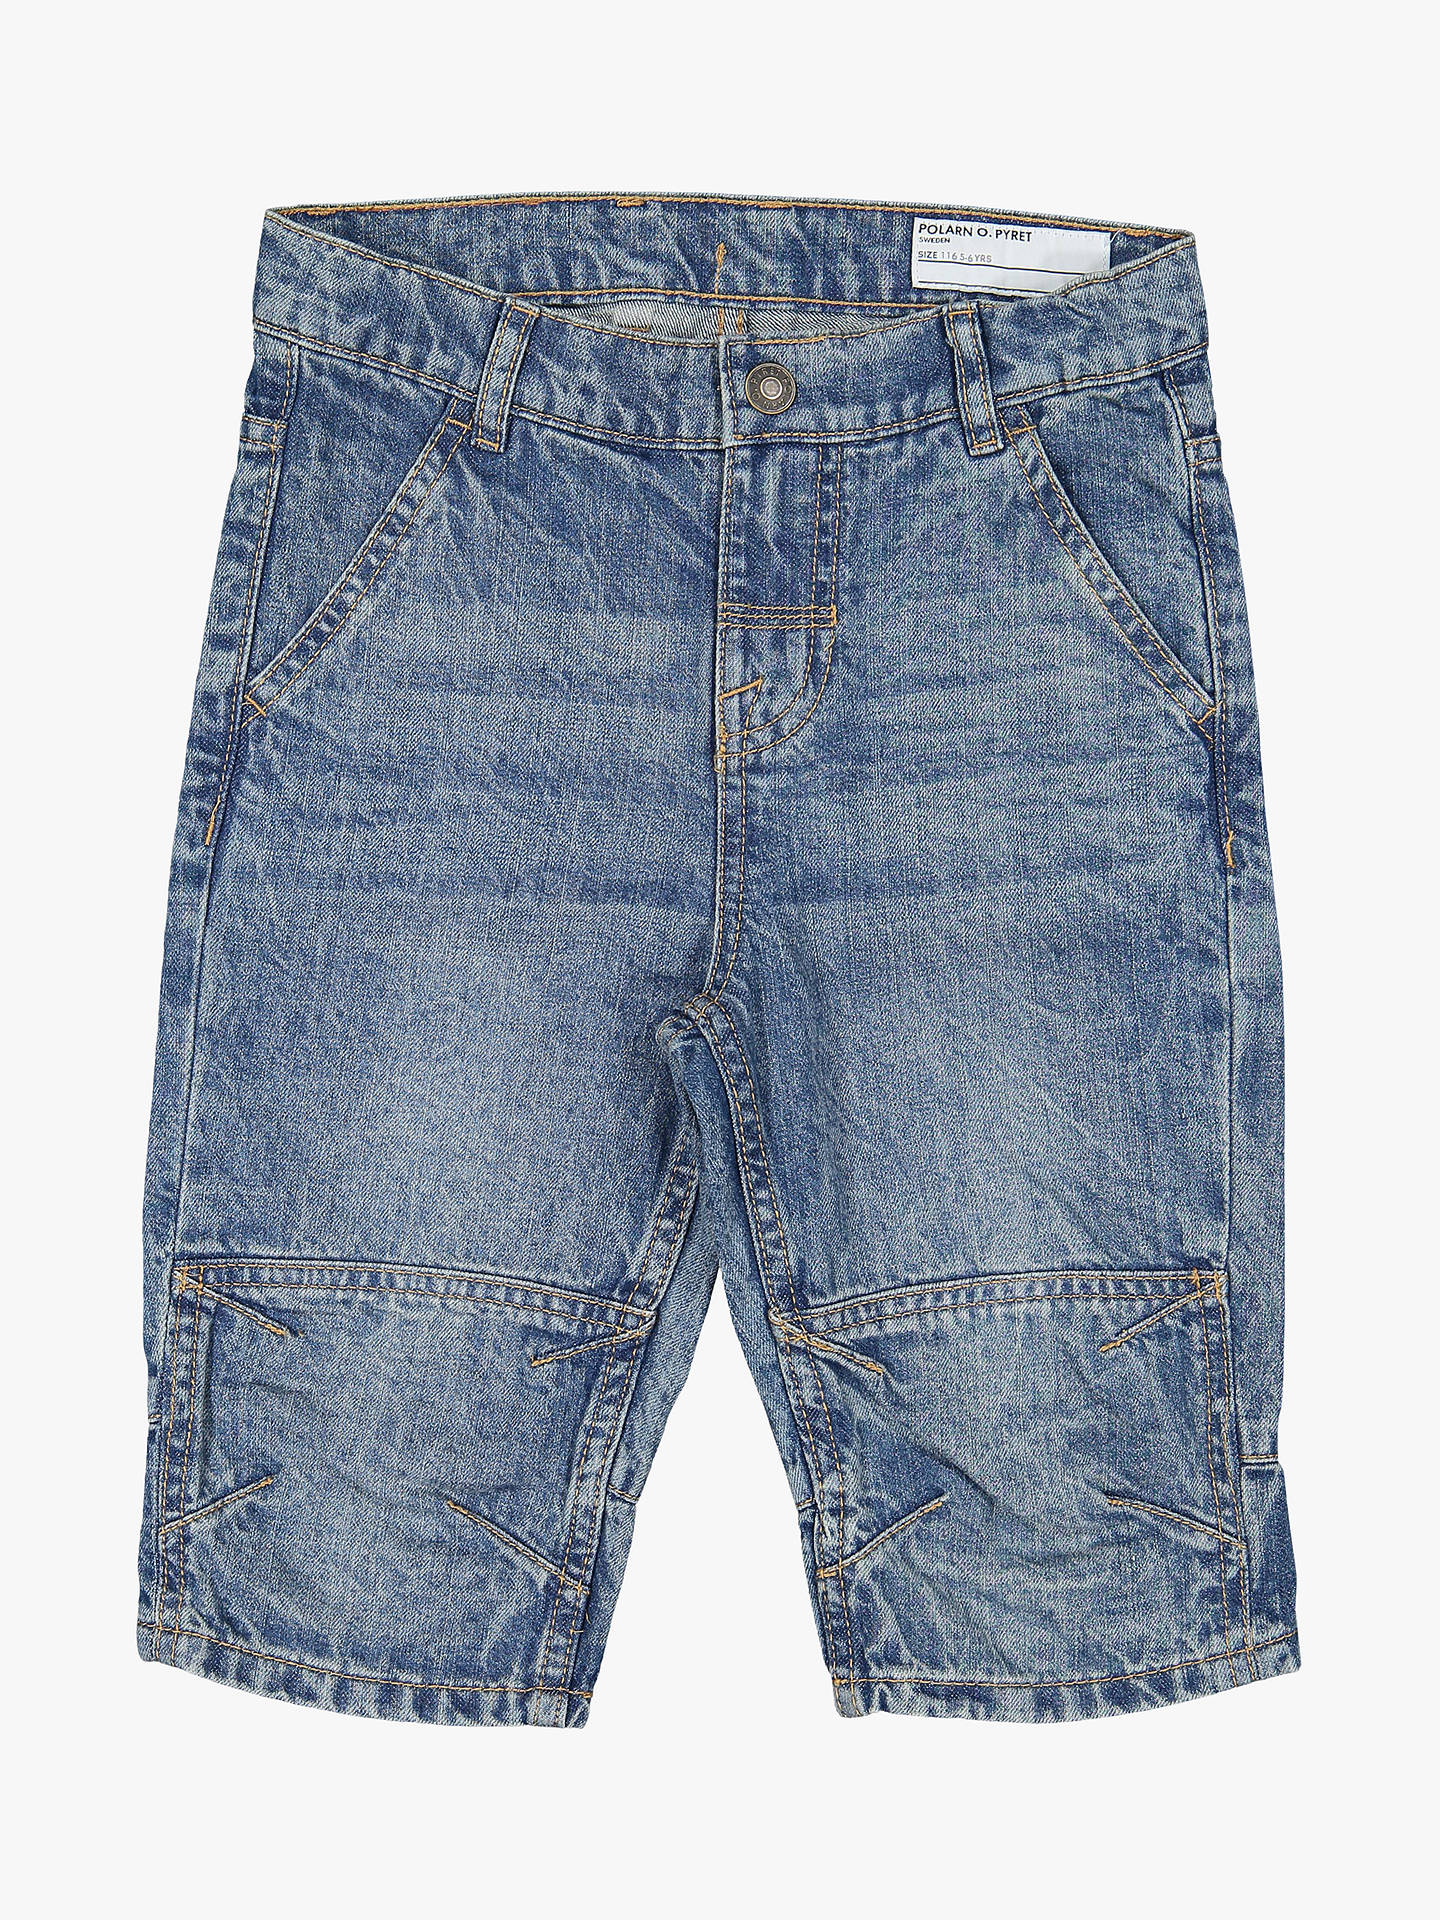 a69b449f6e8c Buy Polarn O. Pyret Children's Denim Shorts, Blue, 11-12 years Online ...